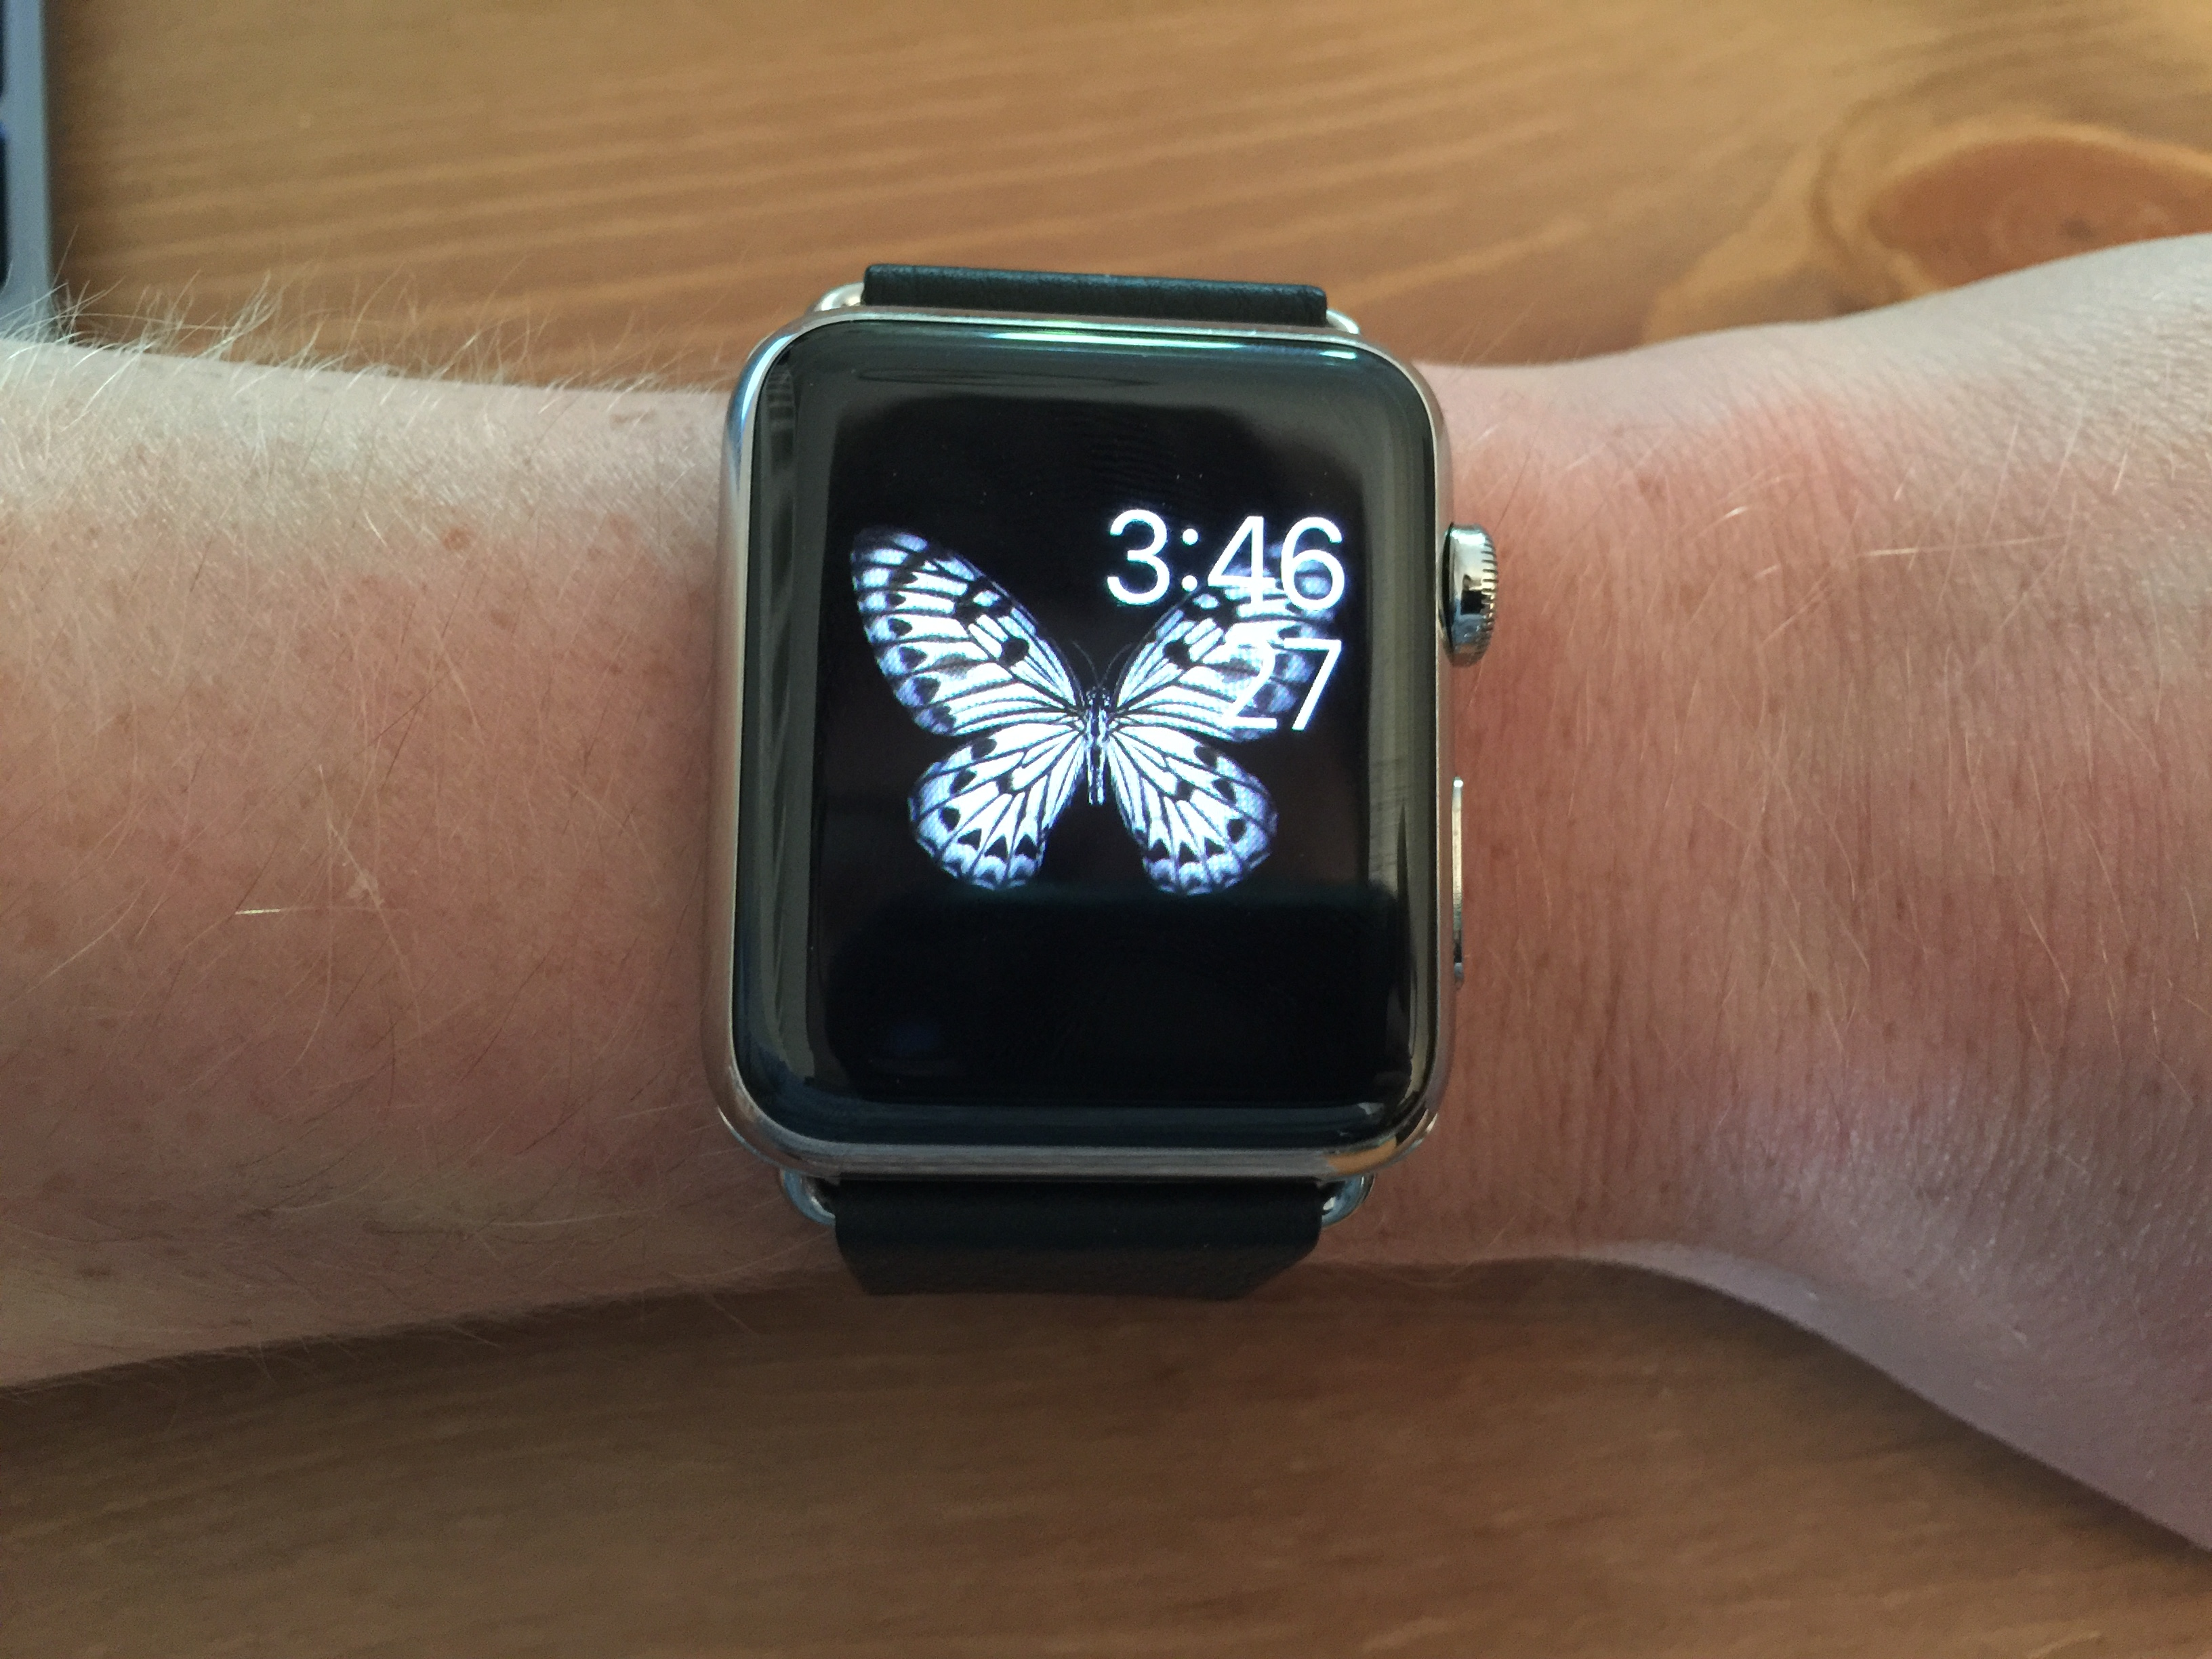 Apple is bringing Watch-style 'Motion' wallpapers to its 'iPhone 6s'